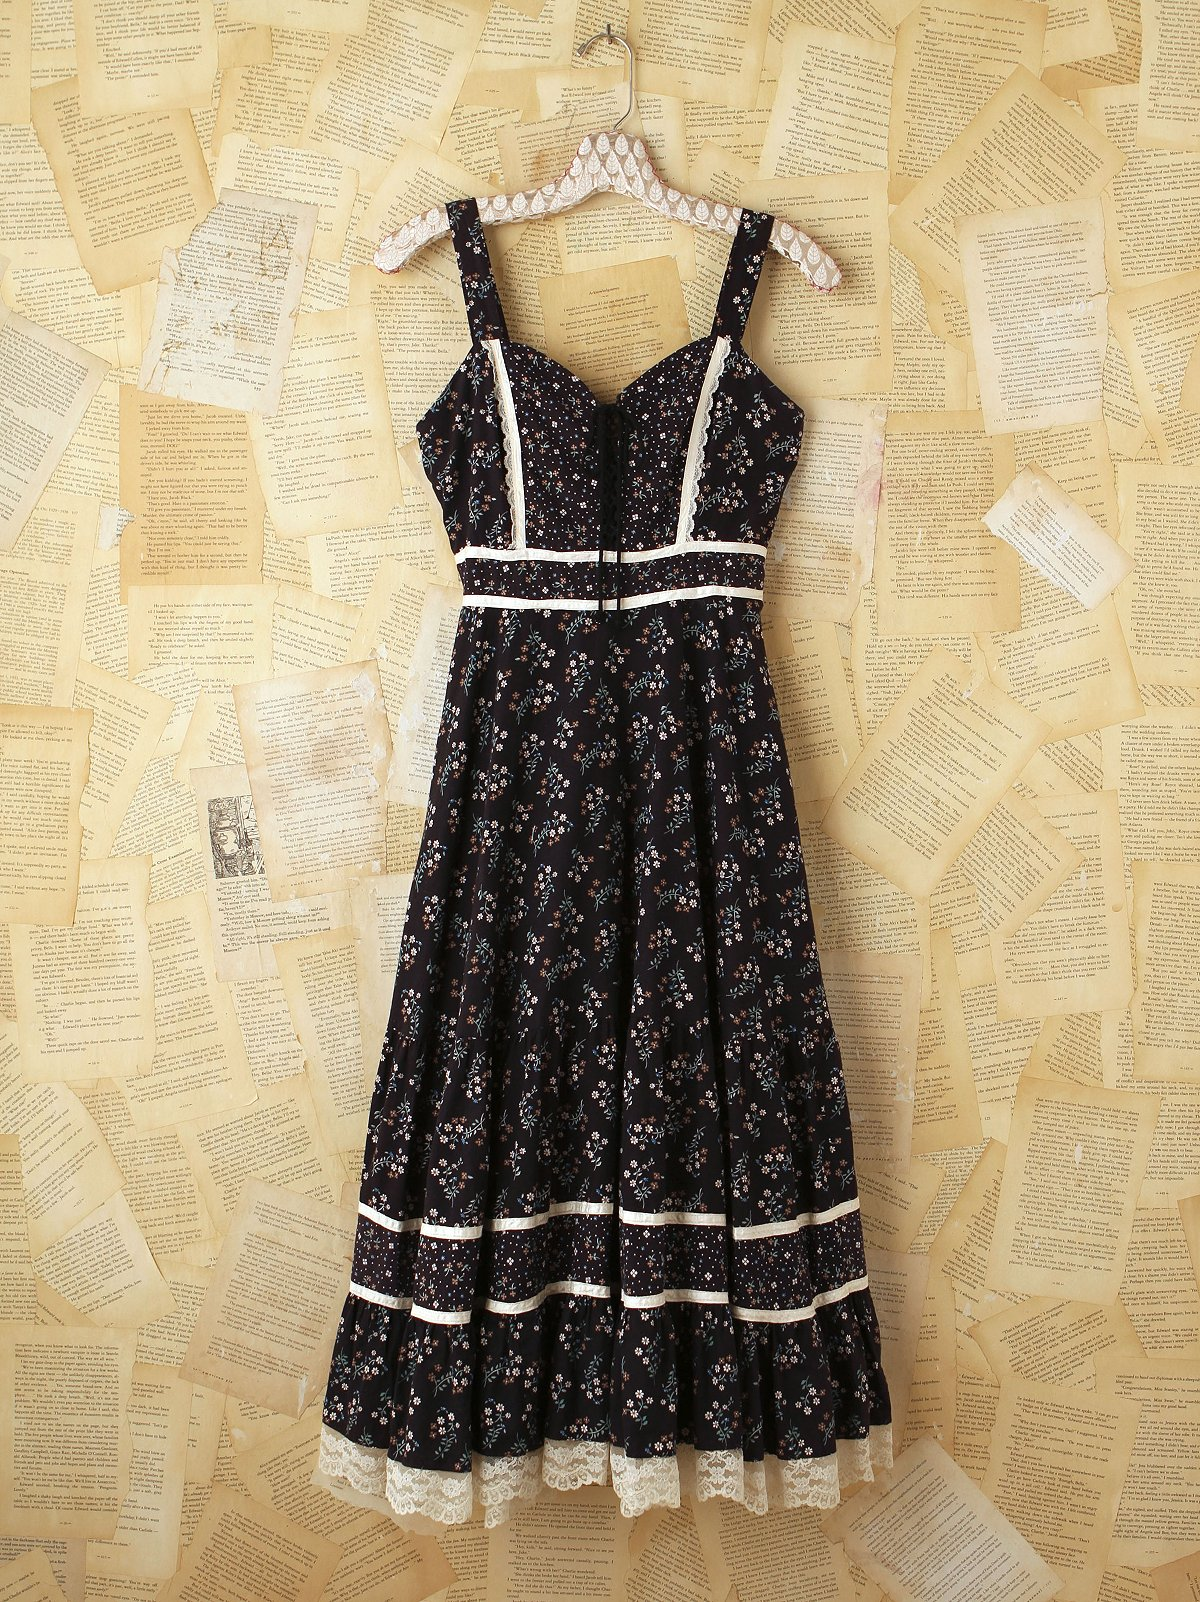 Vintage Gunne Sax Black Dress